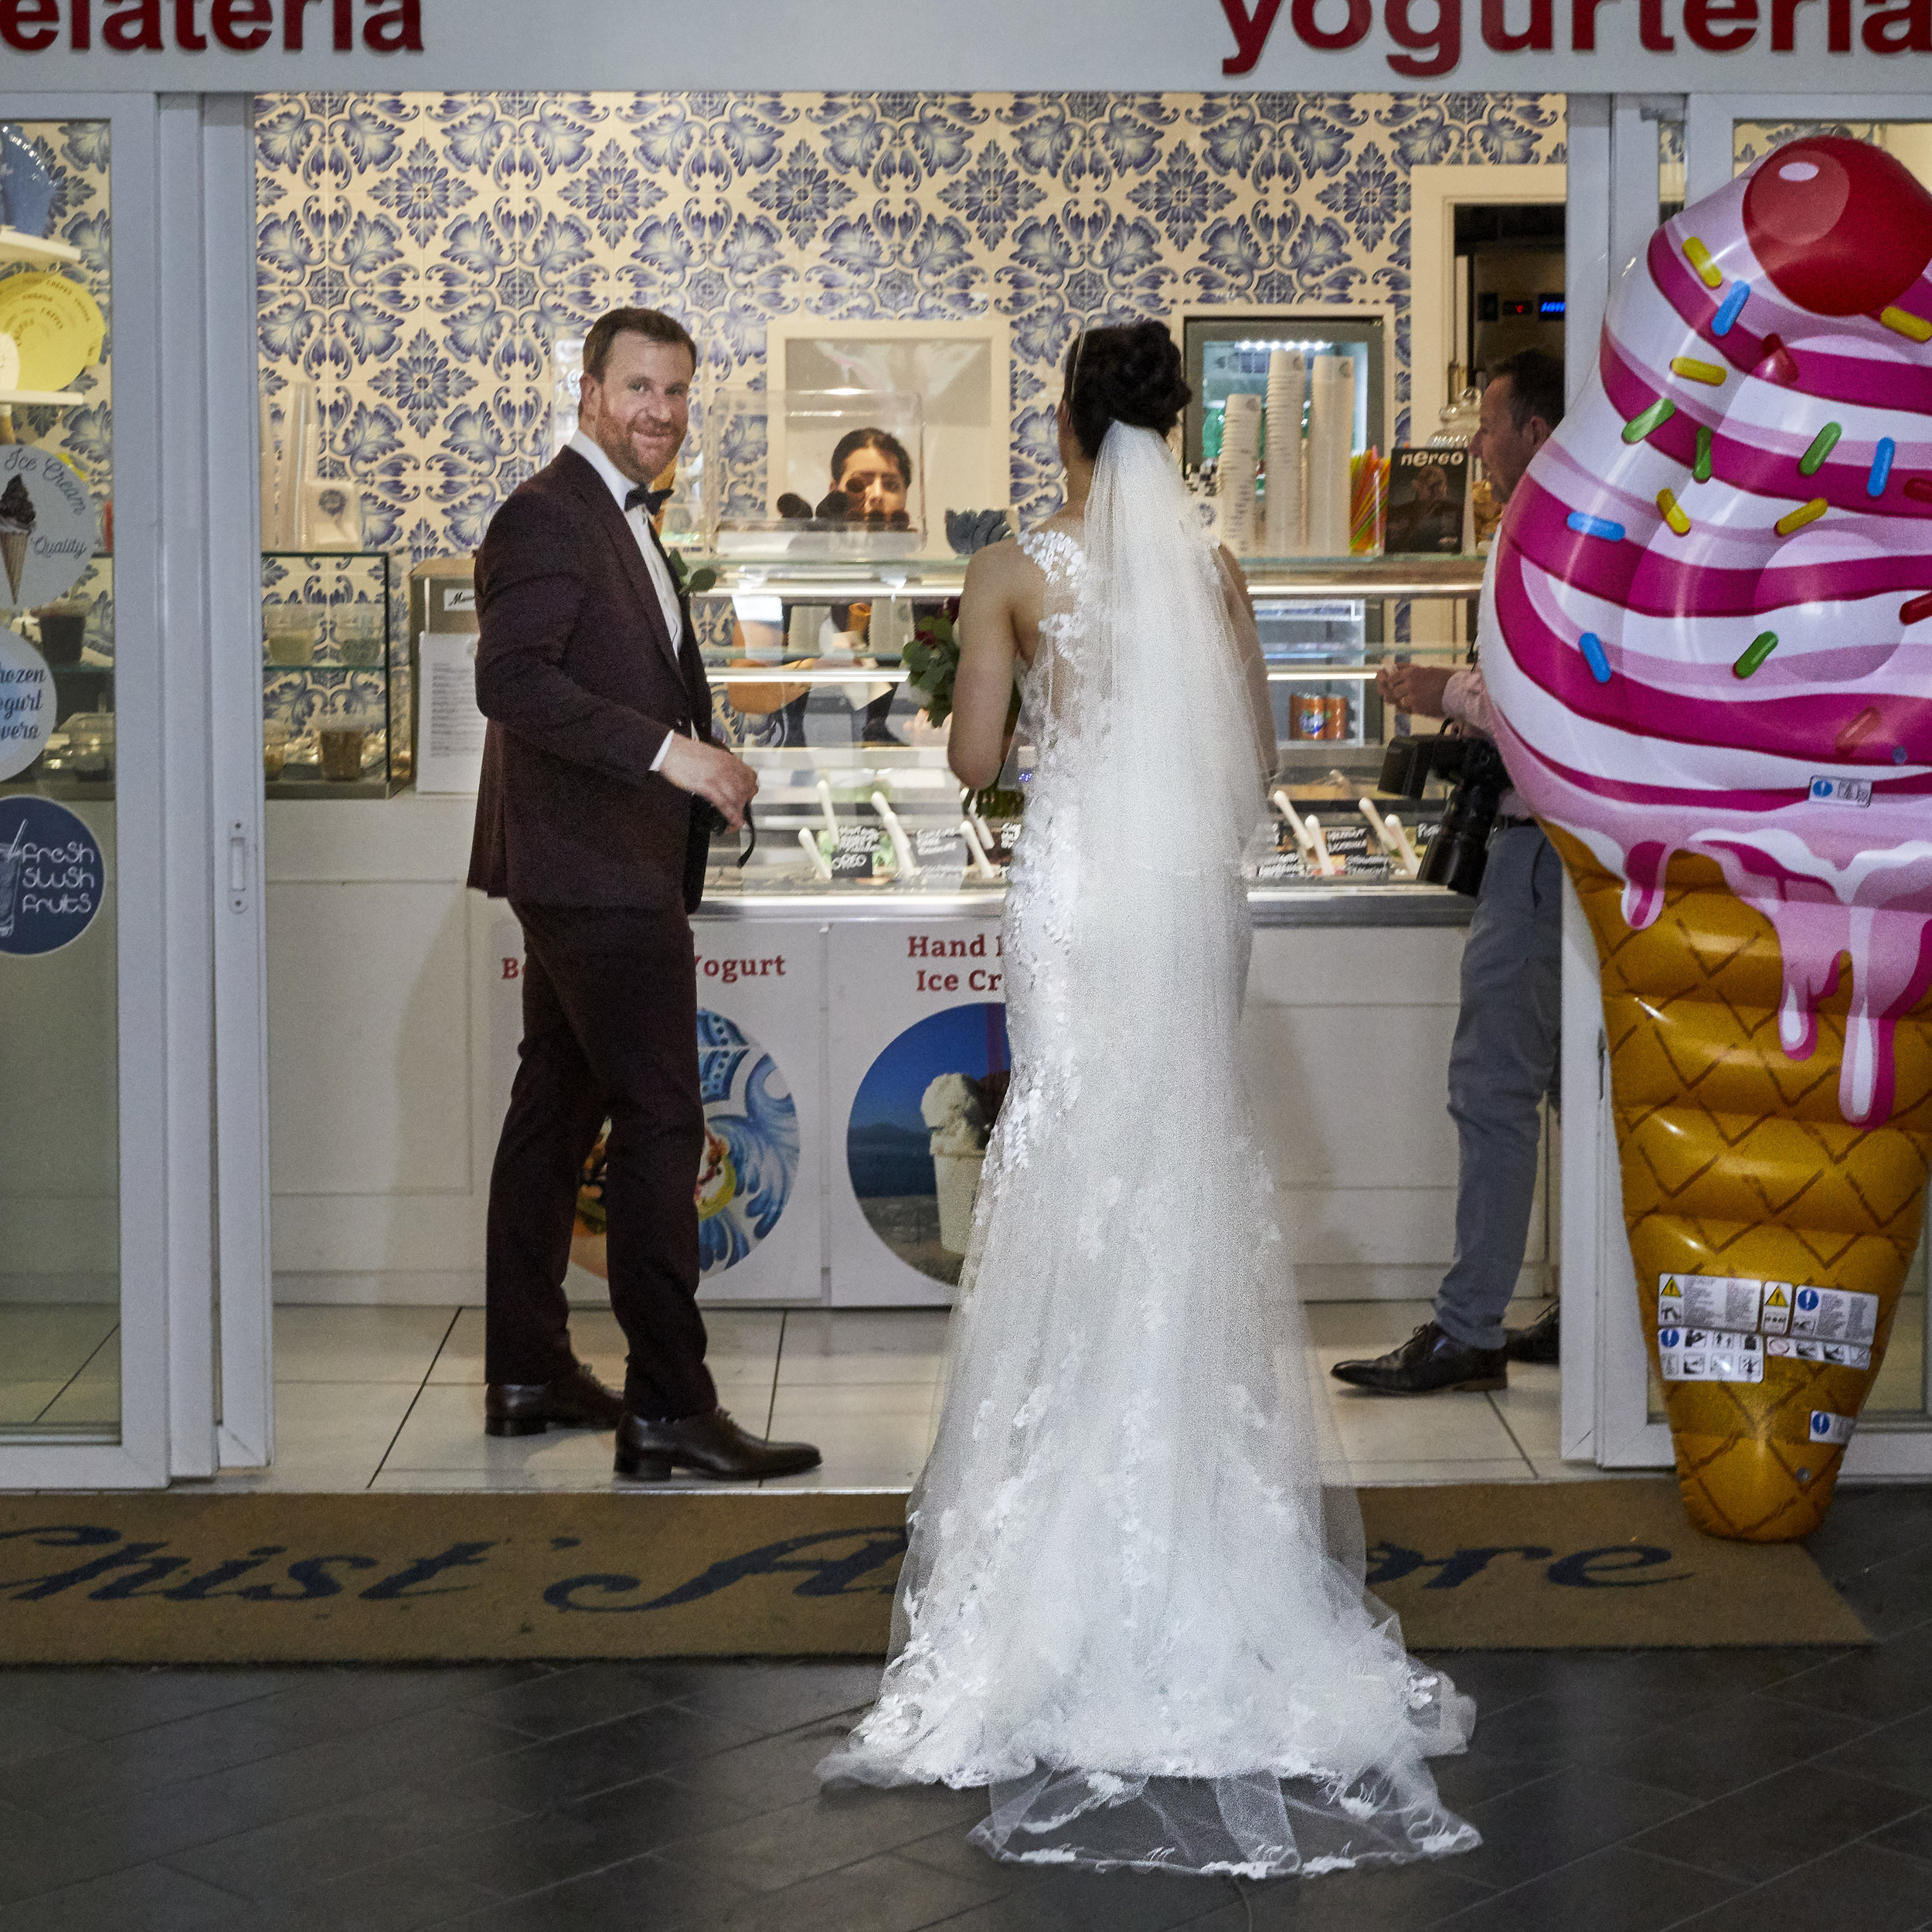 Bride and groom celebrating with Gelato. Sorrento Italy.